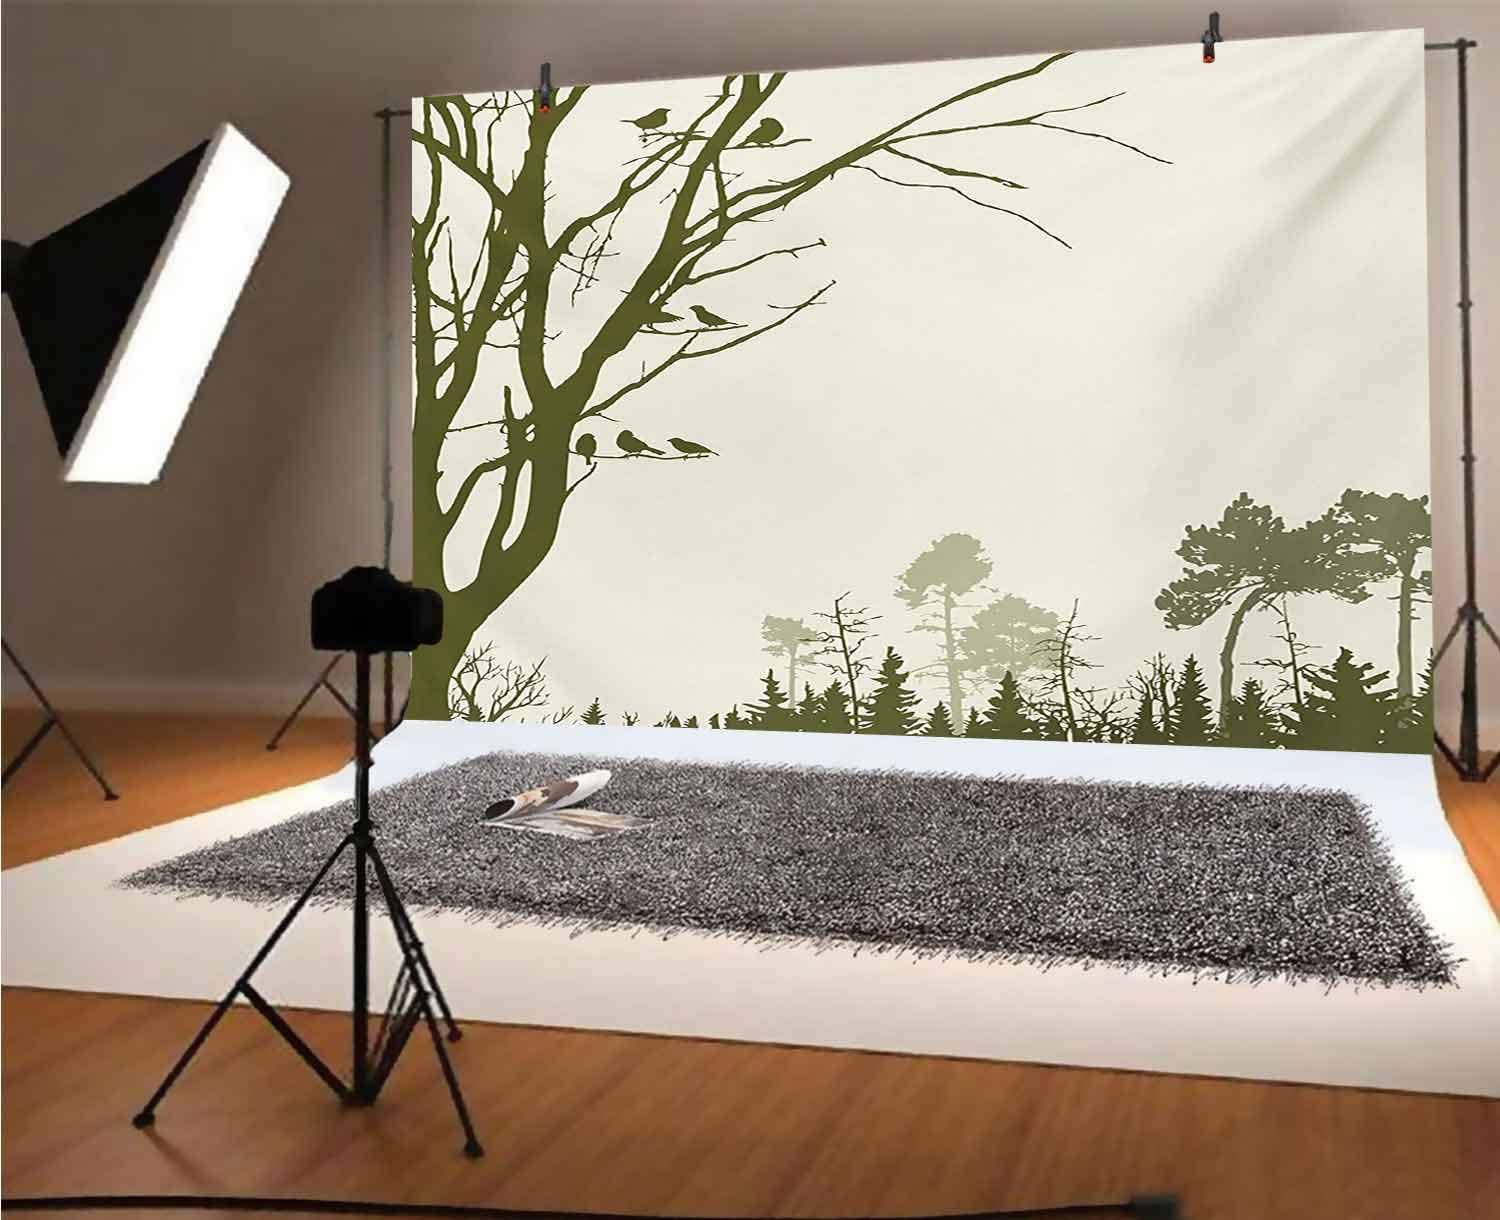 Mountain 15x10 FT Vinyl Backdrop PhotographersWinding Path into The Pine Tree Forest Meadows and Mountain Scenery Print Background for Baby Birthday Party Wedding Graduation Home Decoration